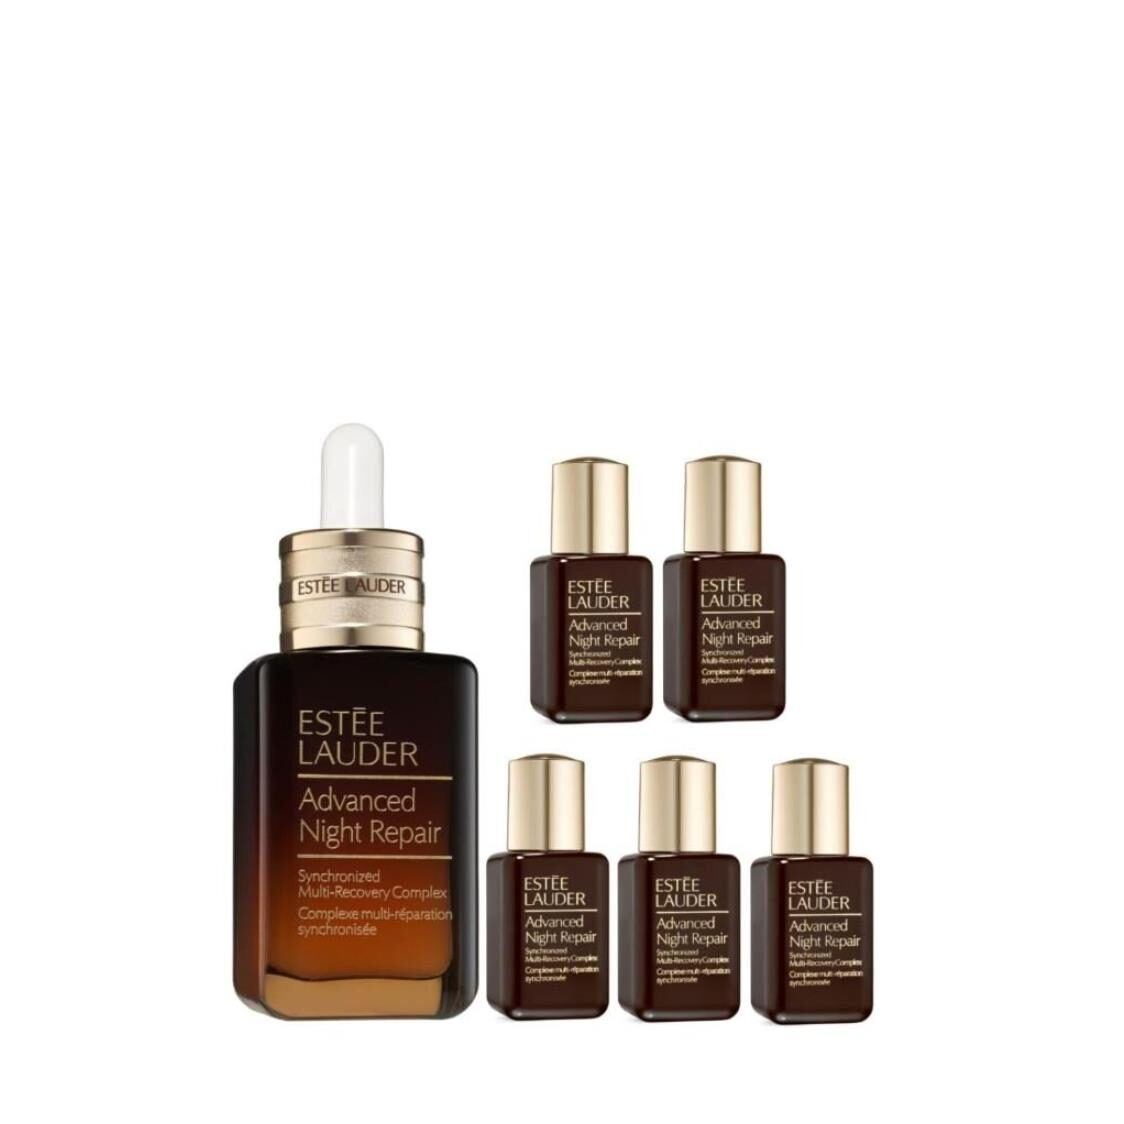 Este Lauder Advanced Night Repair - Share The Love Sets